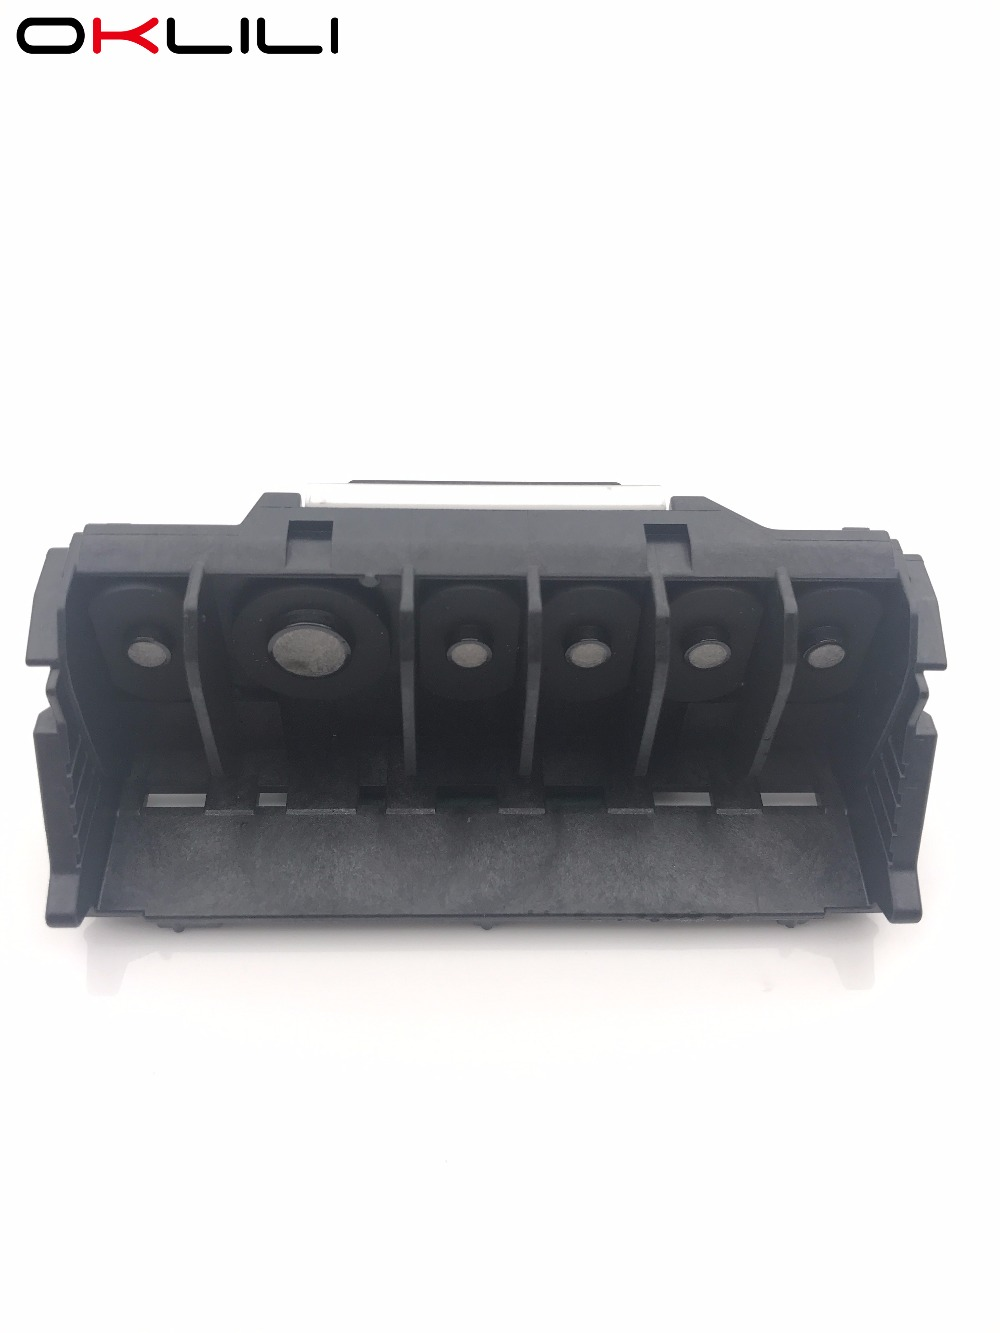 QY6-0090 QY6-0090-000 Printhead Print Head Printer Head for Canon PIXMA TS8020 TS9020 TS8040 TS8050 TS8070 TS8080 TS9050 TS9080 qy6 0069 qy6 0069 qy60069 qy6 0069 000 printhead print head printer head remanufactured for canon mini260 mini320